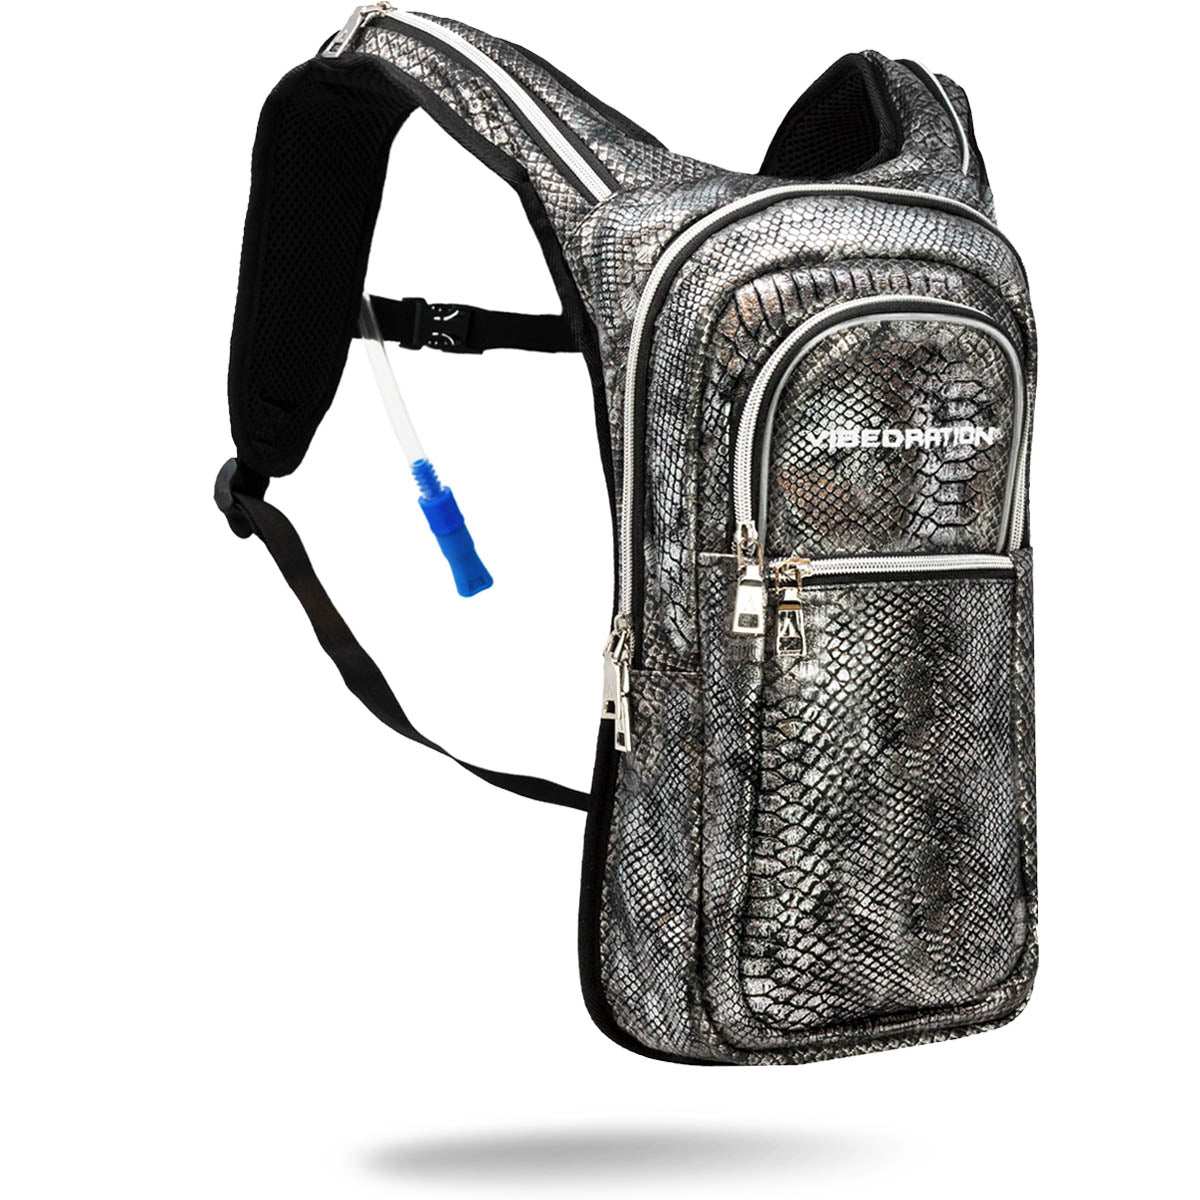 Black and silver water backpack for Burning Man